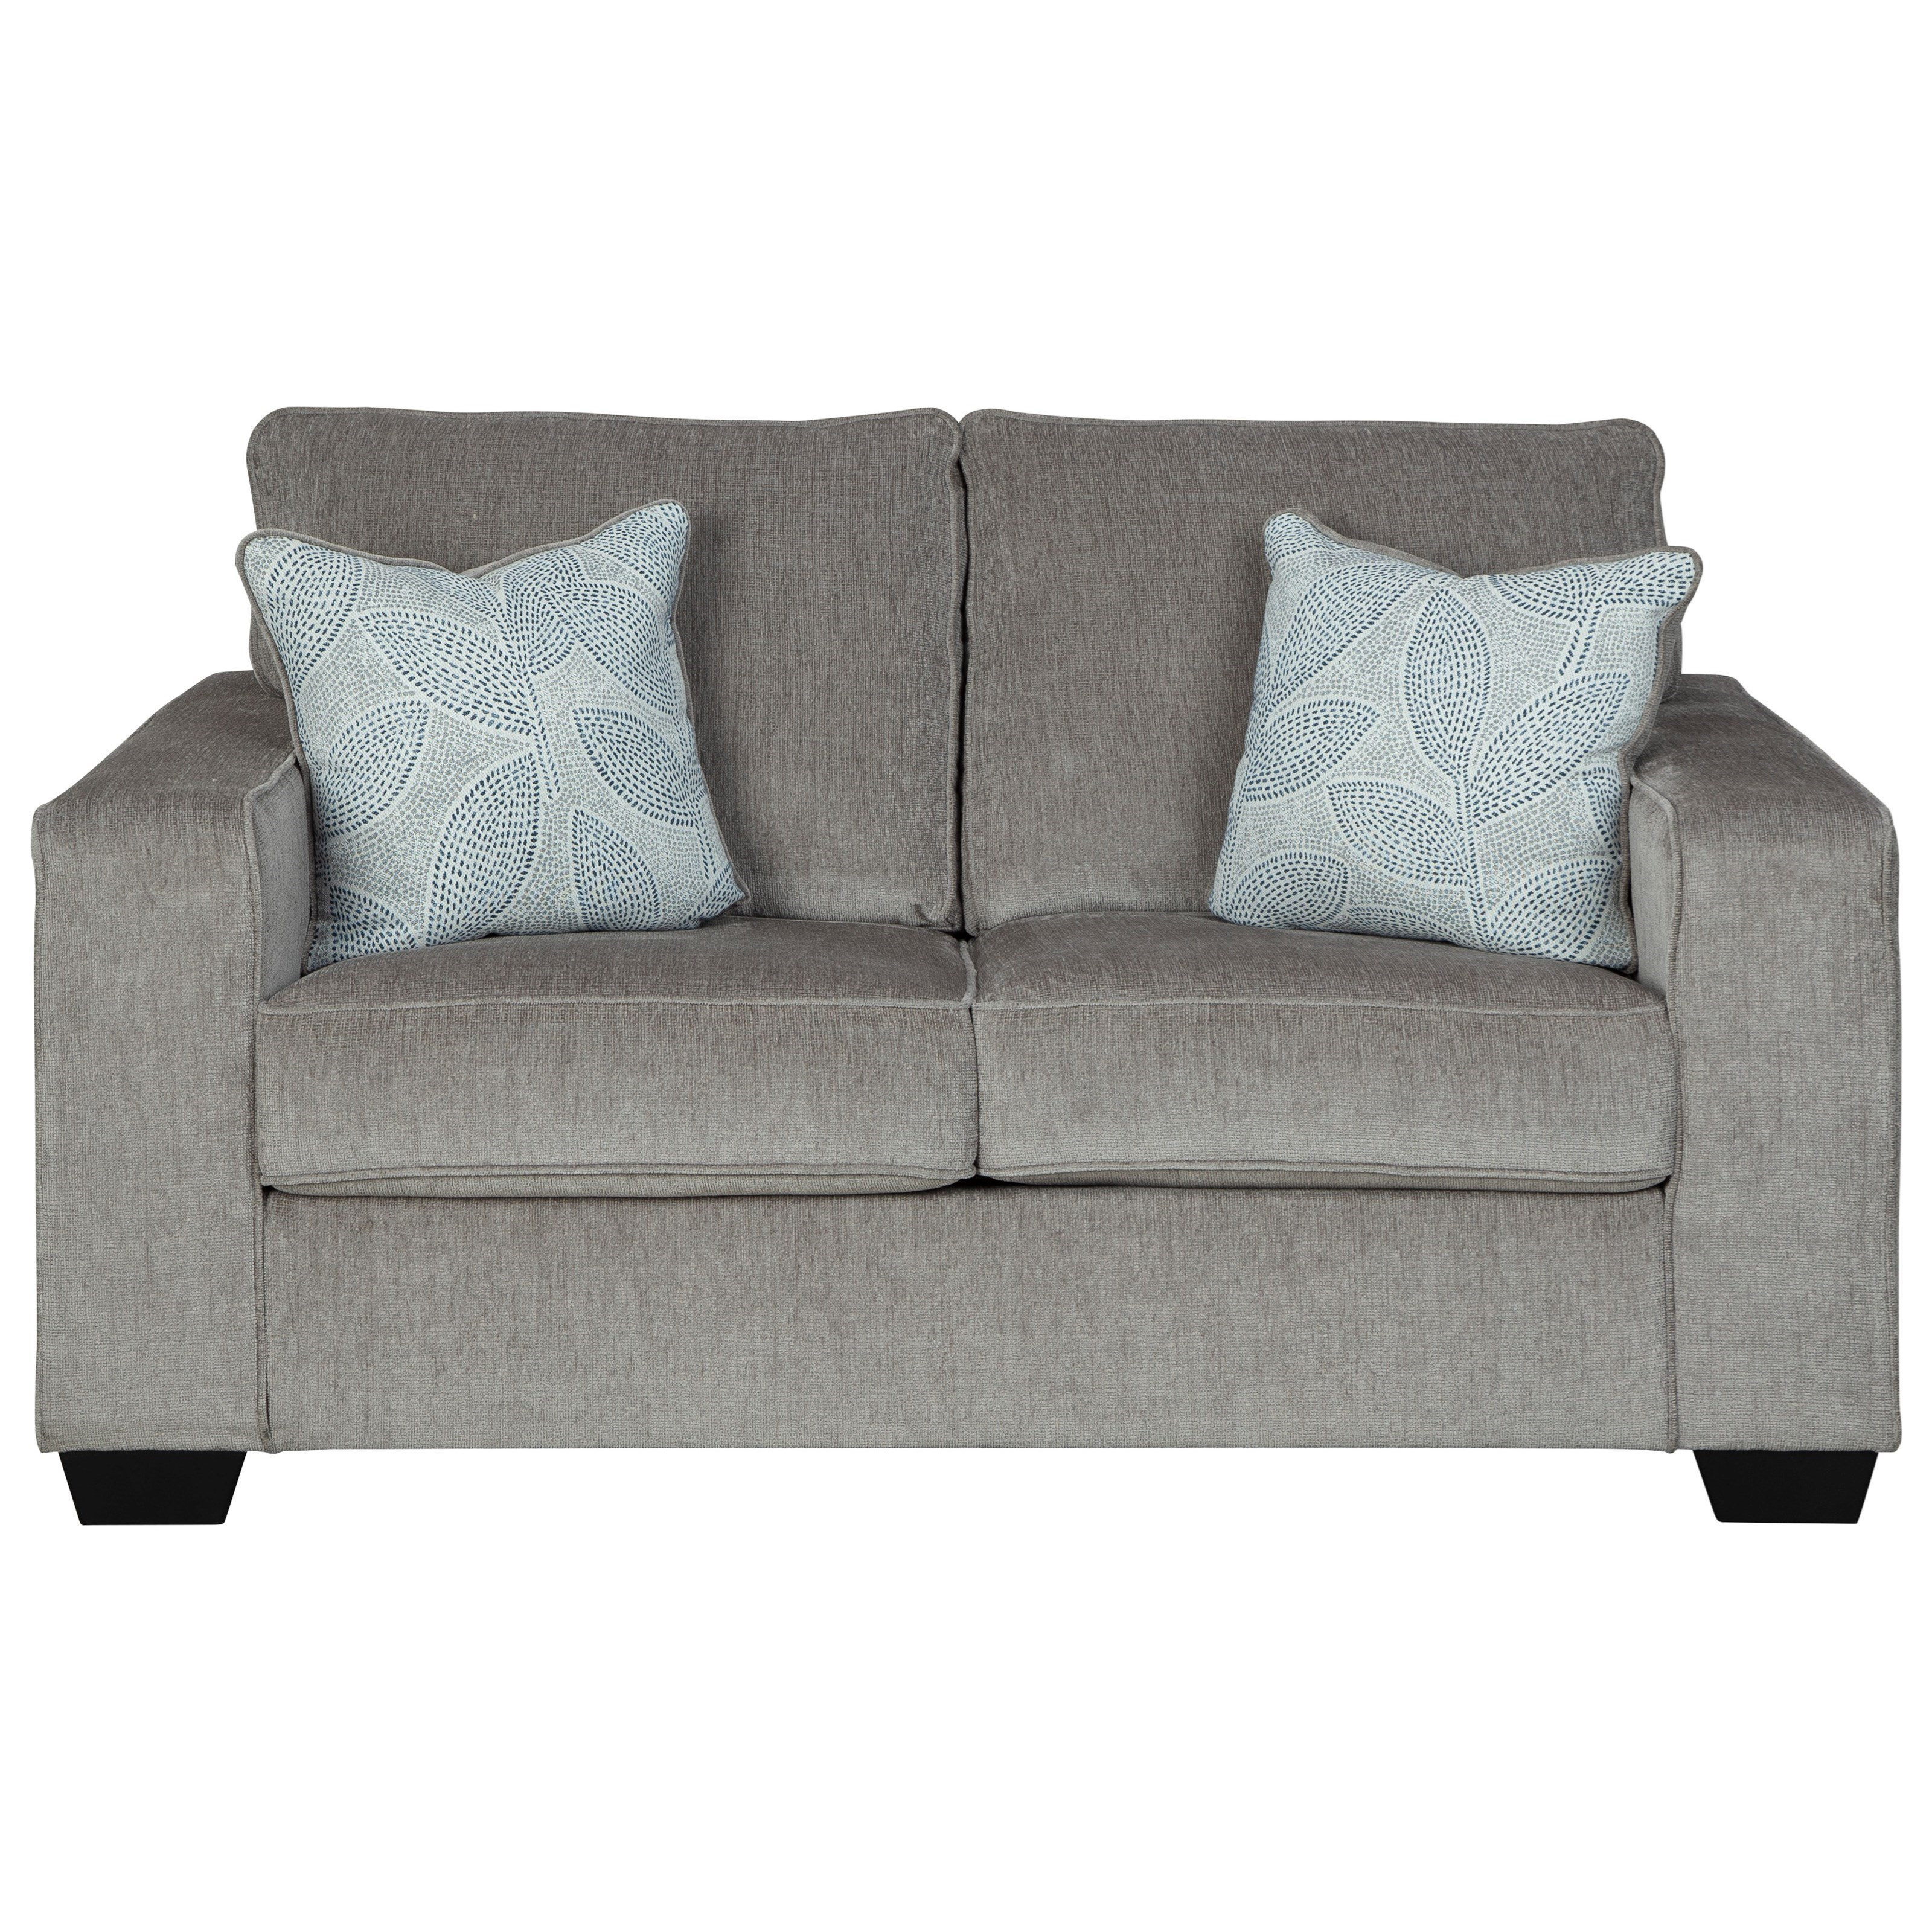 Altari Loveseat by Signature Design by Ashley at Home Furnishings Direct